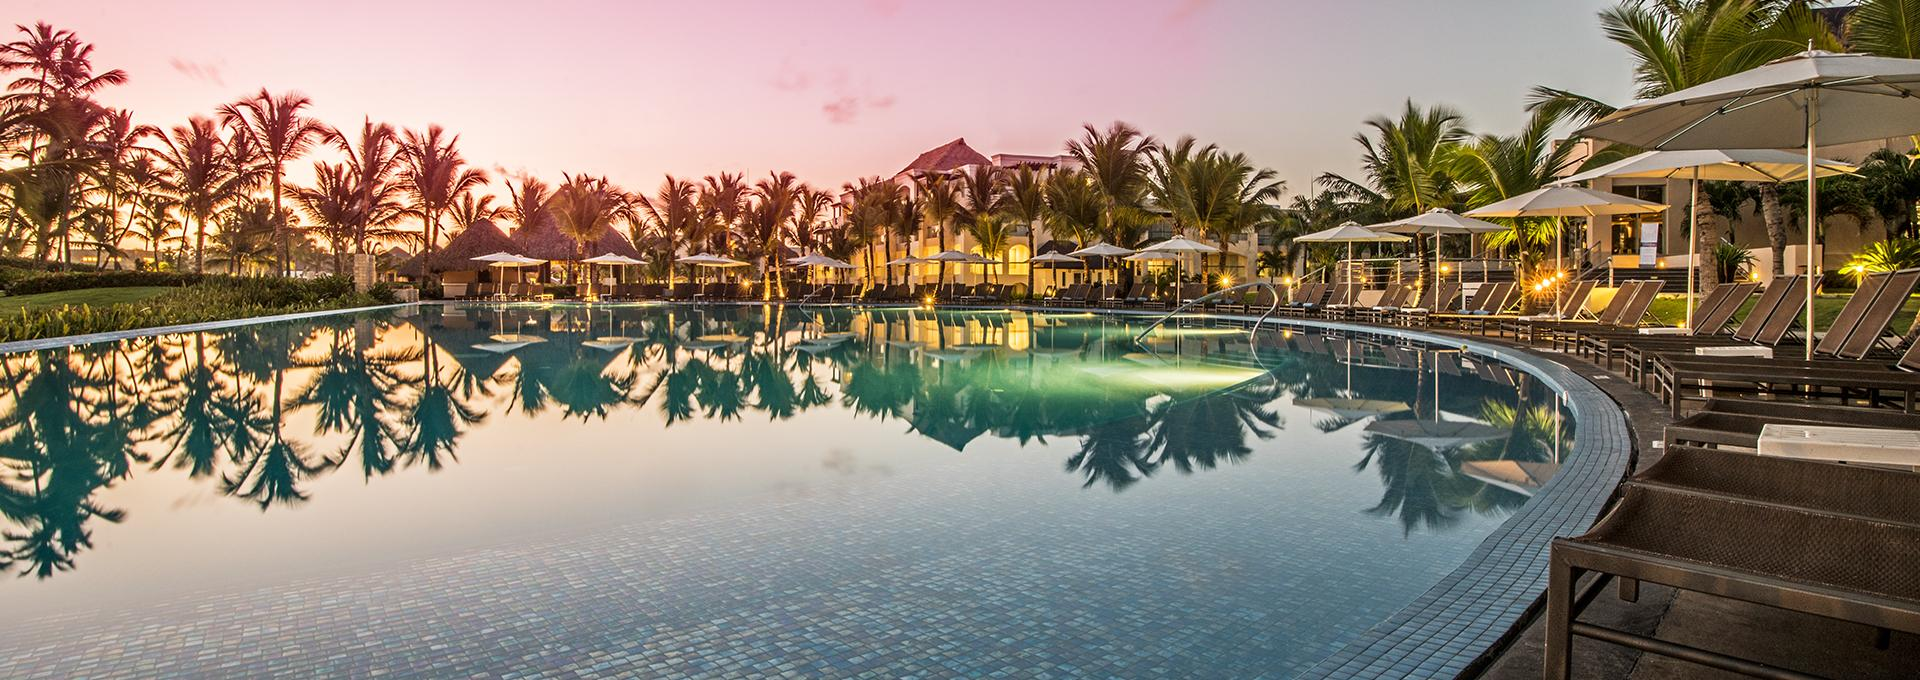 pool view of Hard Rock Hotel in Punta Cana